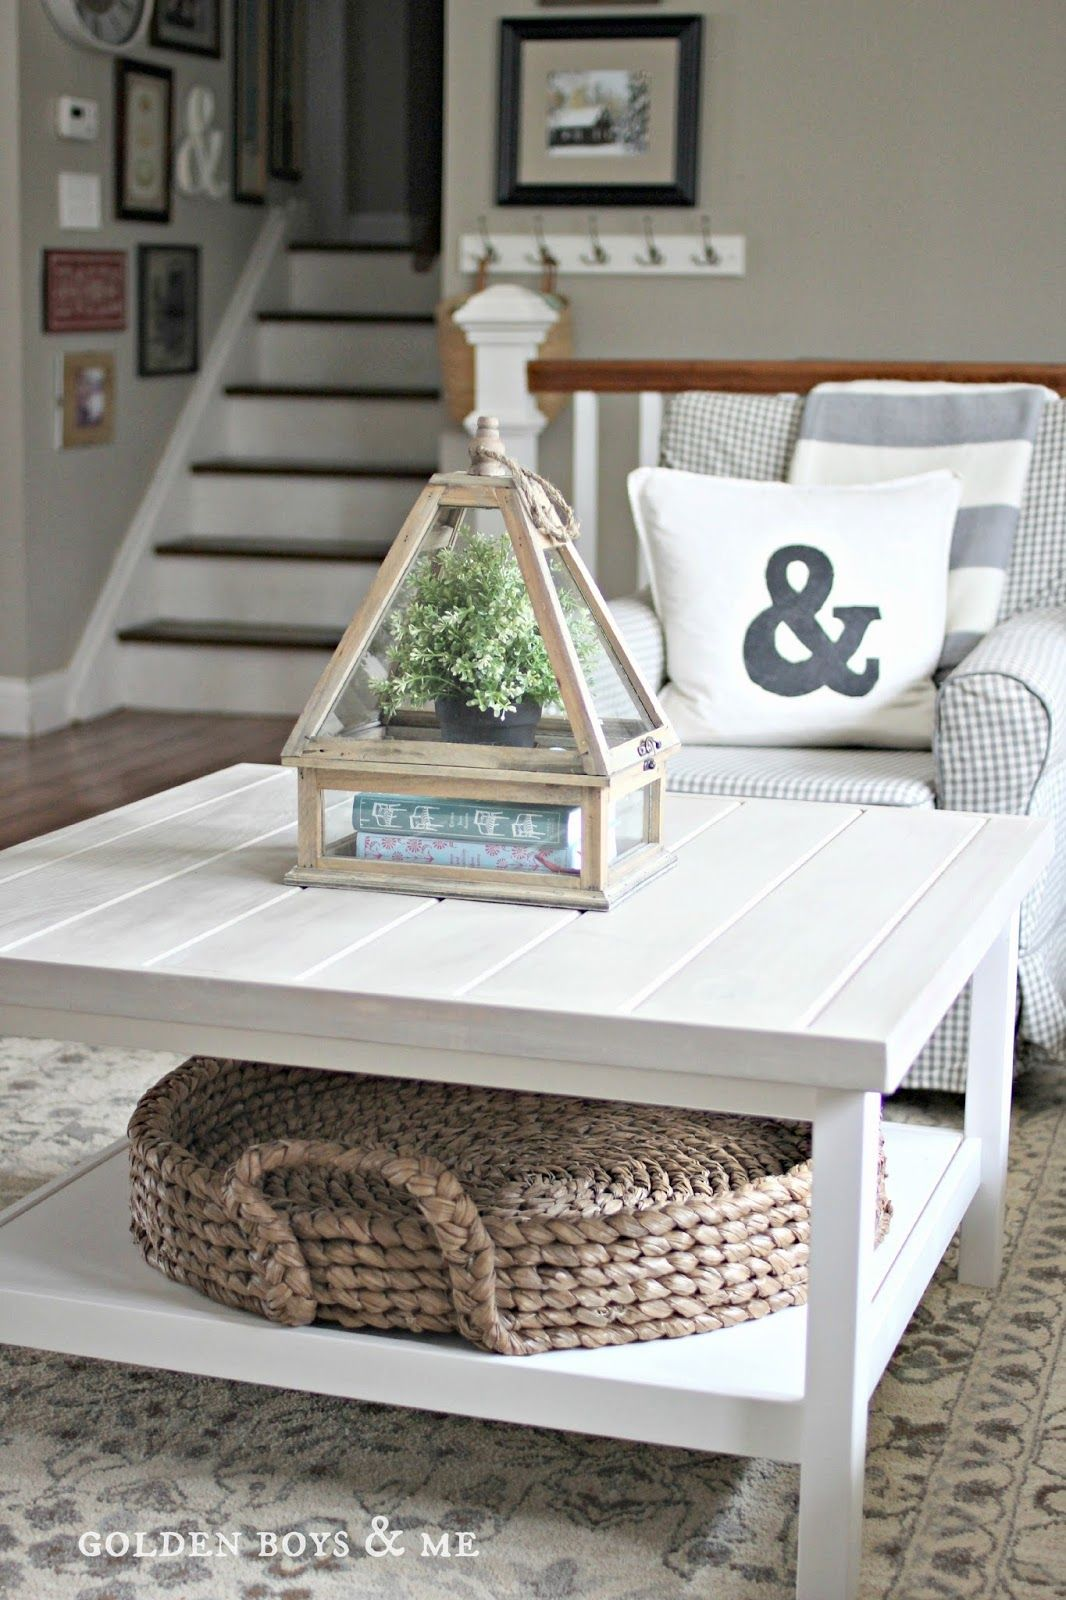 Unique Coffee Table Decor 12 Coffee Table Decorating Ideas How To Style Your Coffee Table